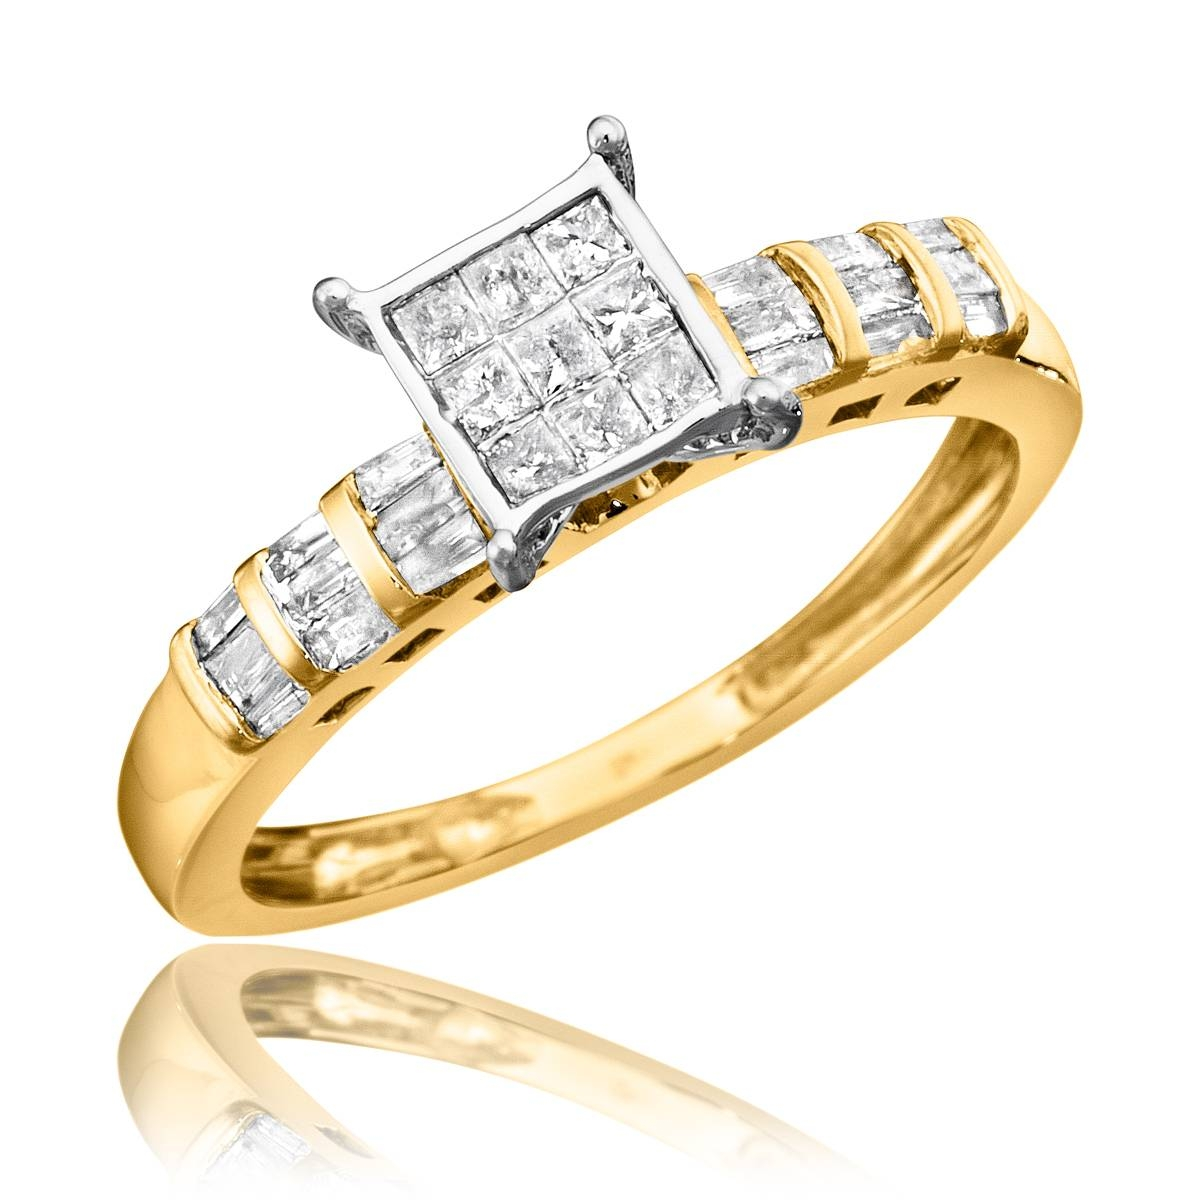 3/4 Carat Diamond Bridal Wedding Ring Set 10K Yellow Gold For Gold Engagement And Wedding Rings Sets (View 9 of 15)